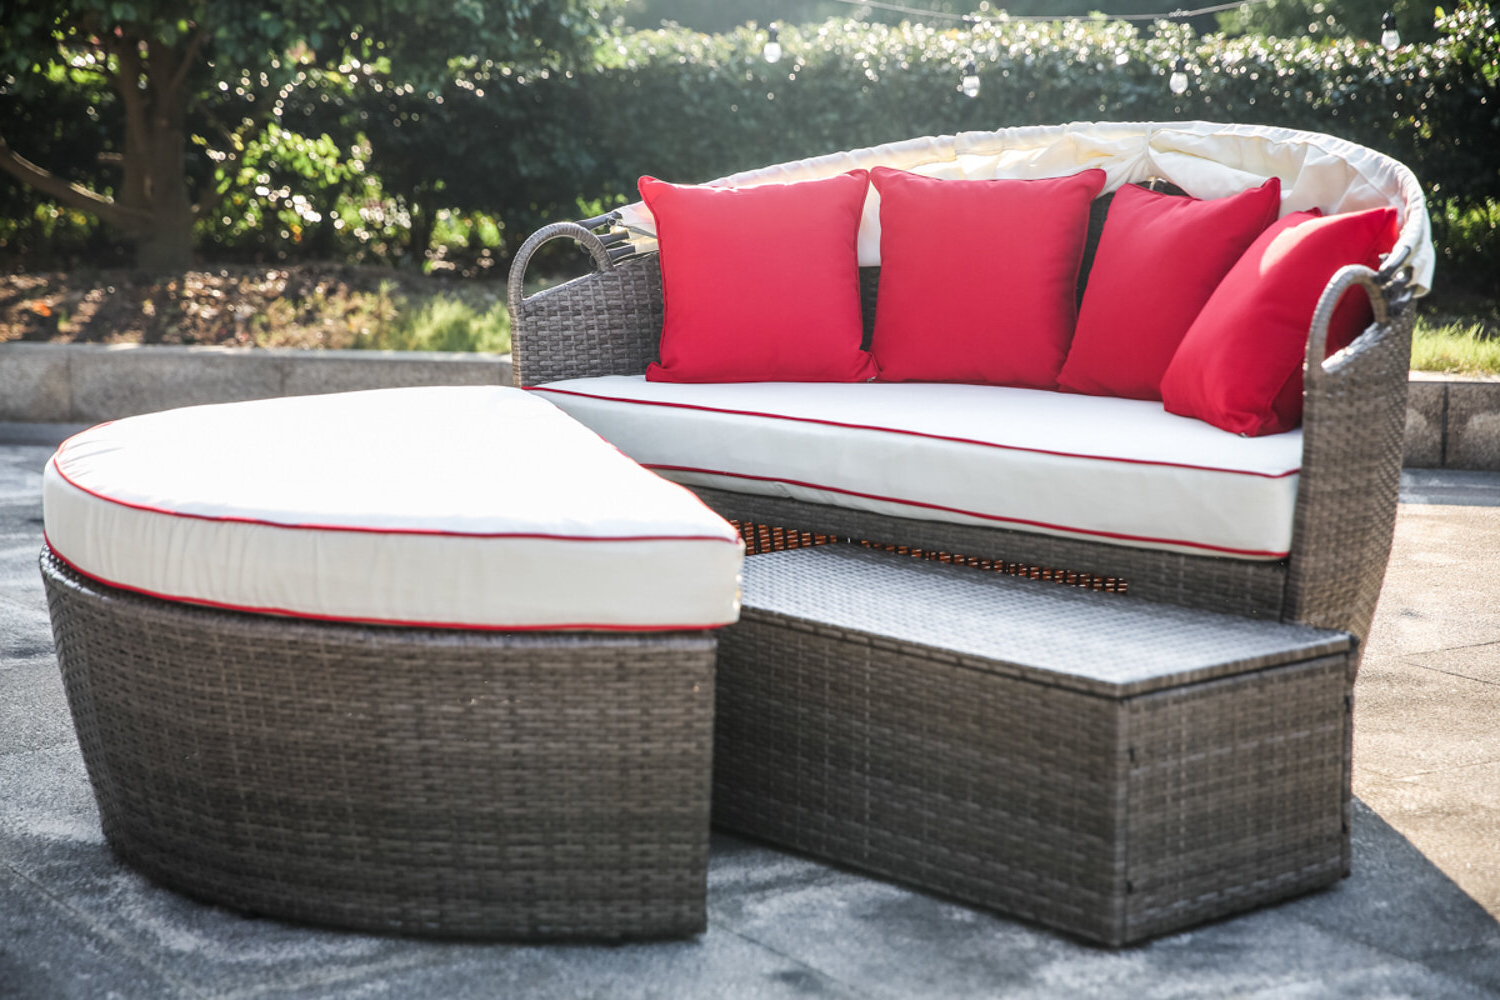 Fansler Patio Daybed With Cushions Throughout Well Liked Harlow Patio Daybeds With Cushions (View 9 of 20)